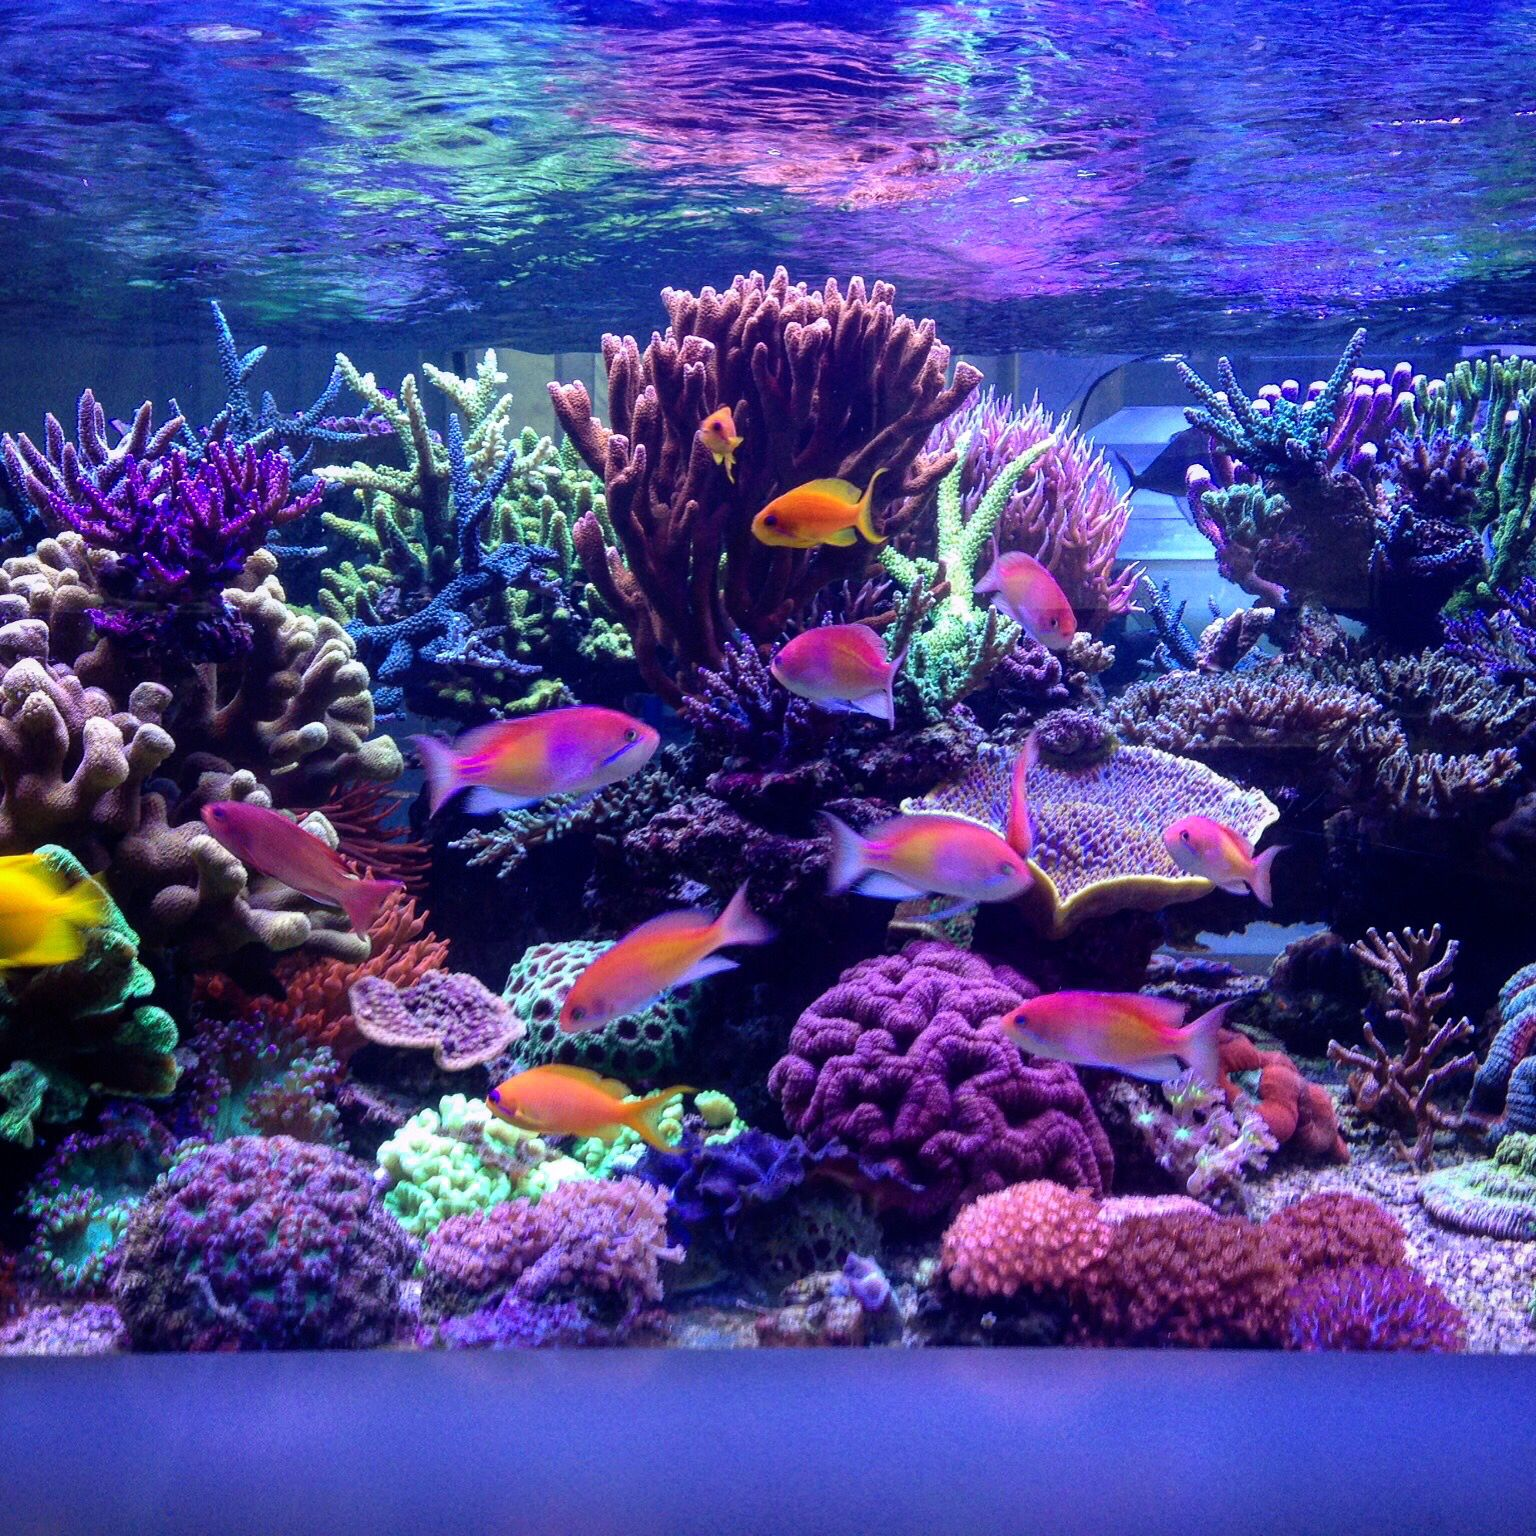 My favorite reef tank of all time Sunnyx s I hope someday mine